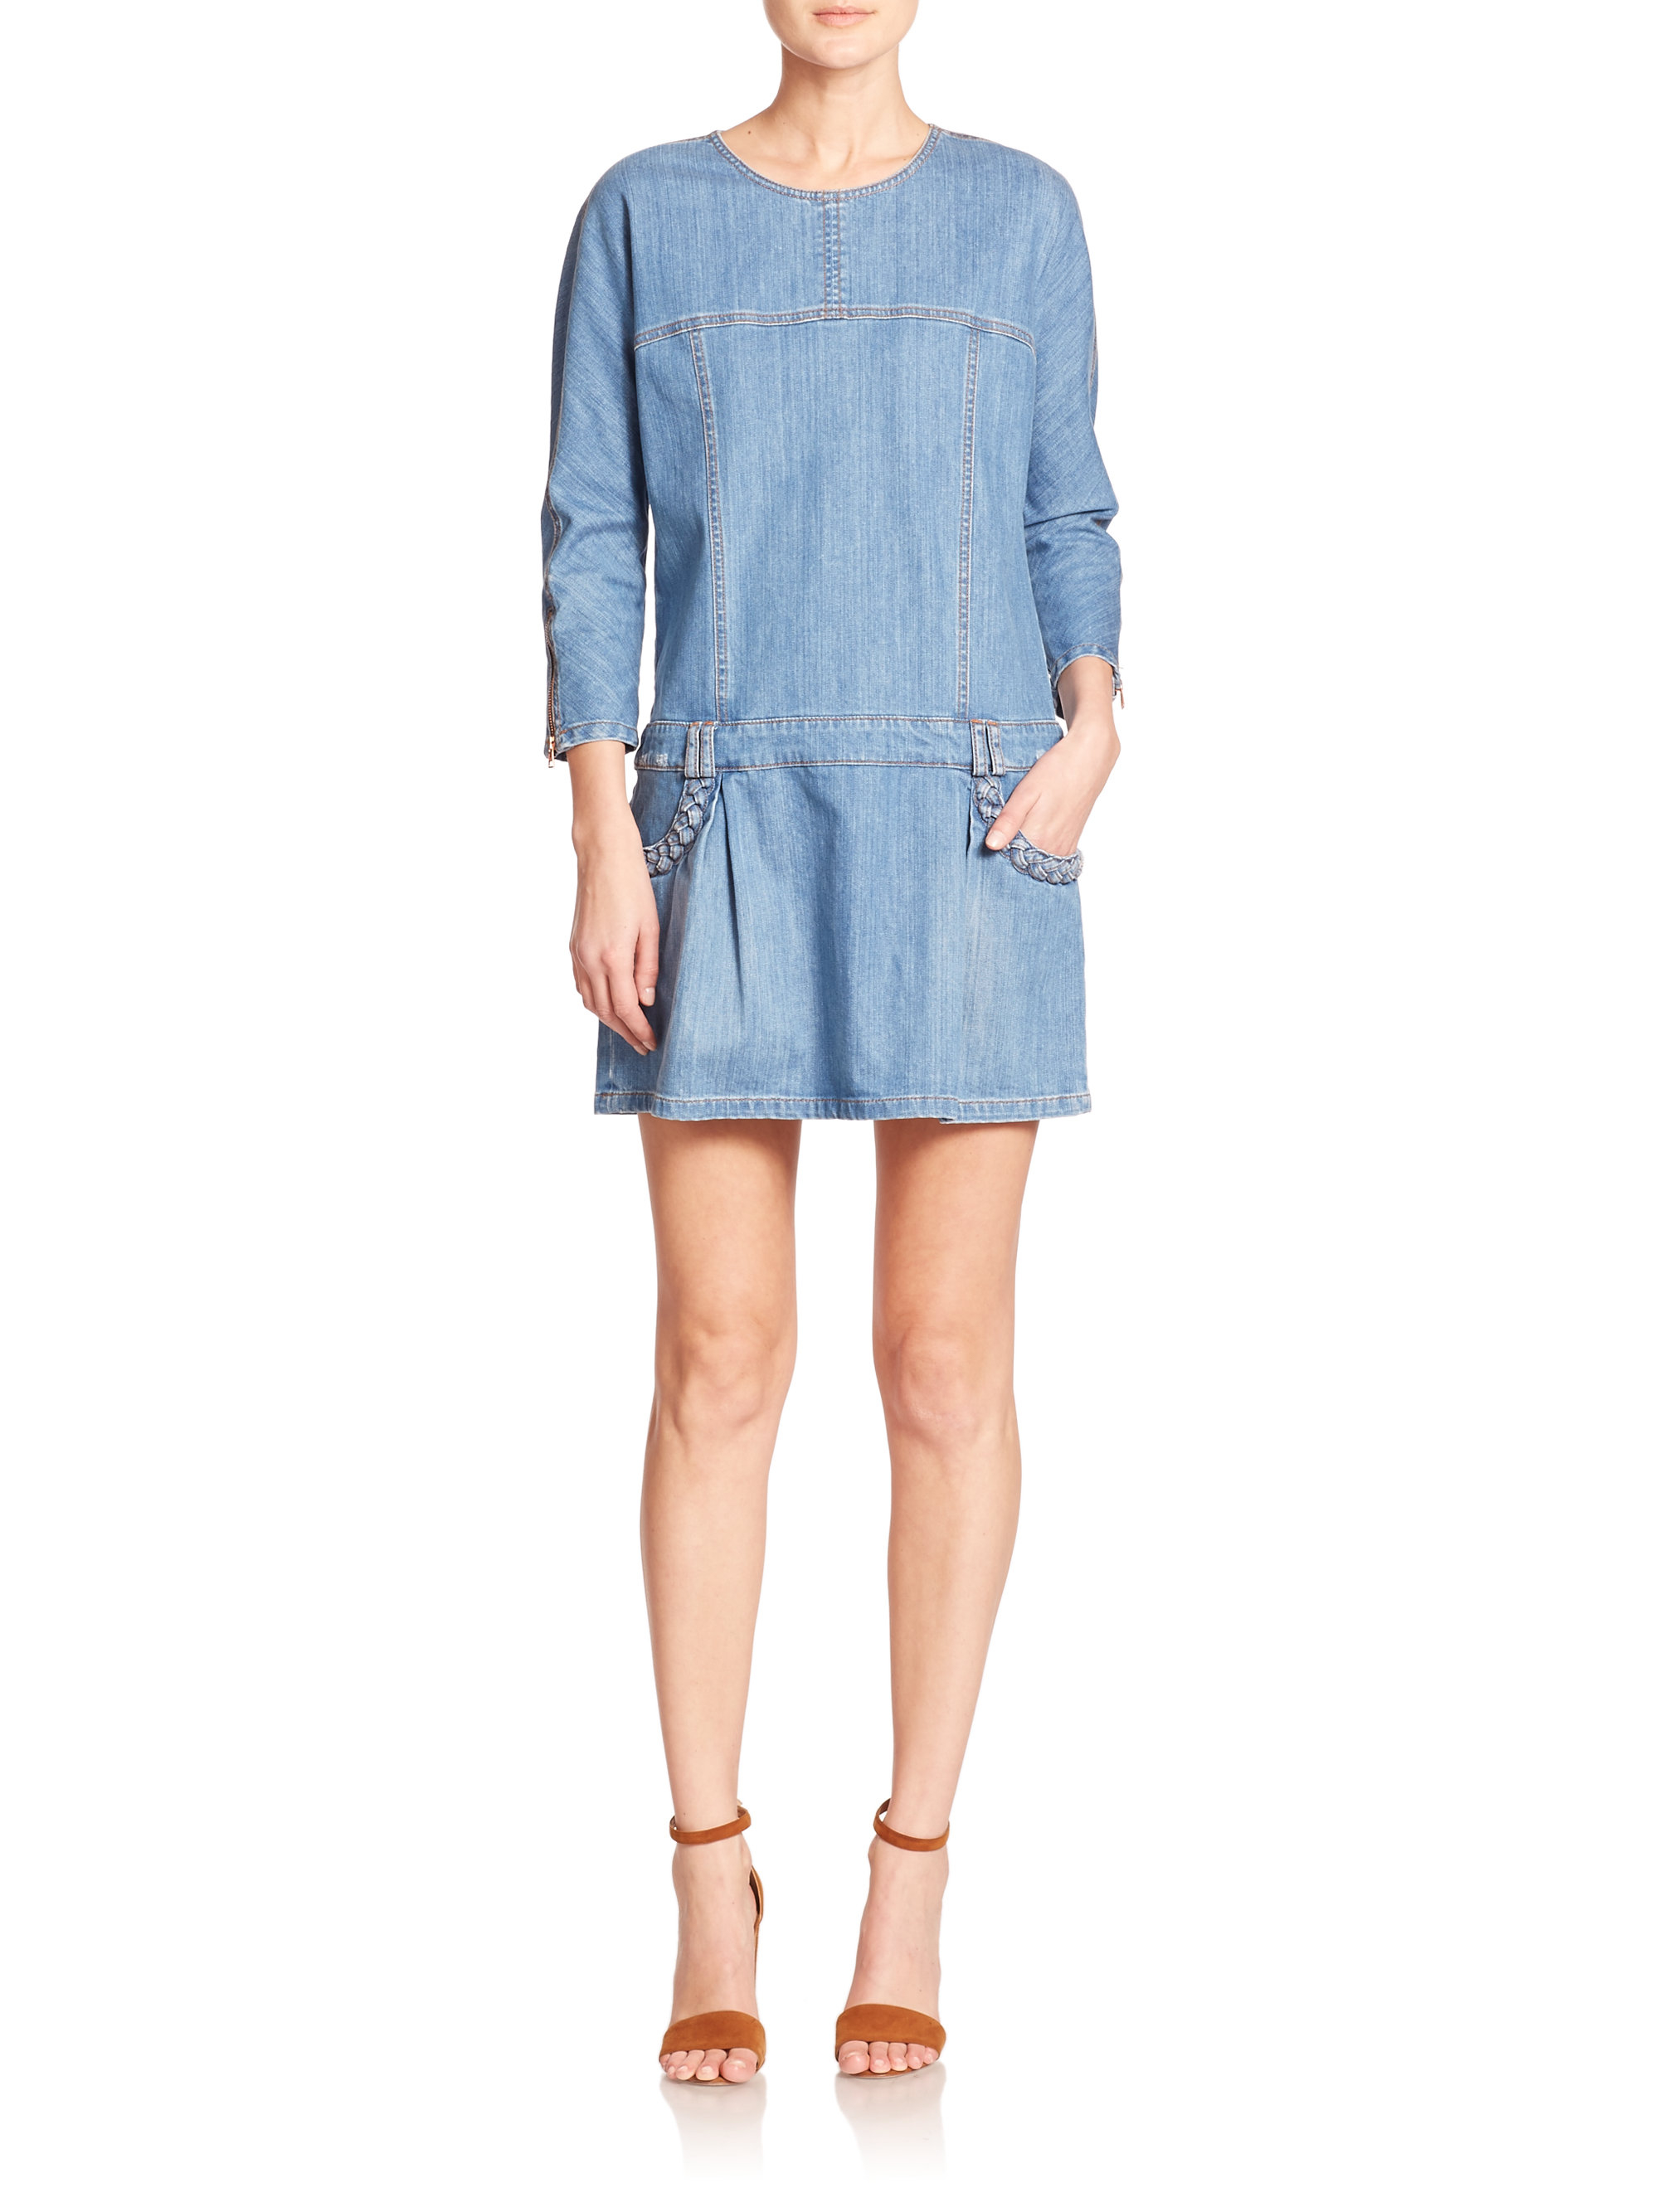 Waist By Blue In Chloé See Dress Lyst Drop Denim IAwR1qC